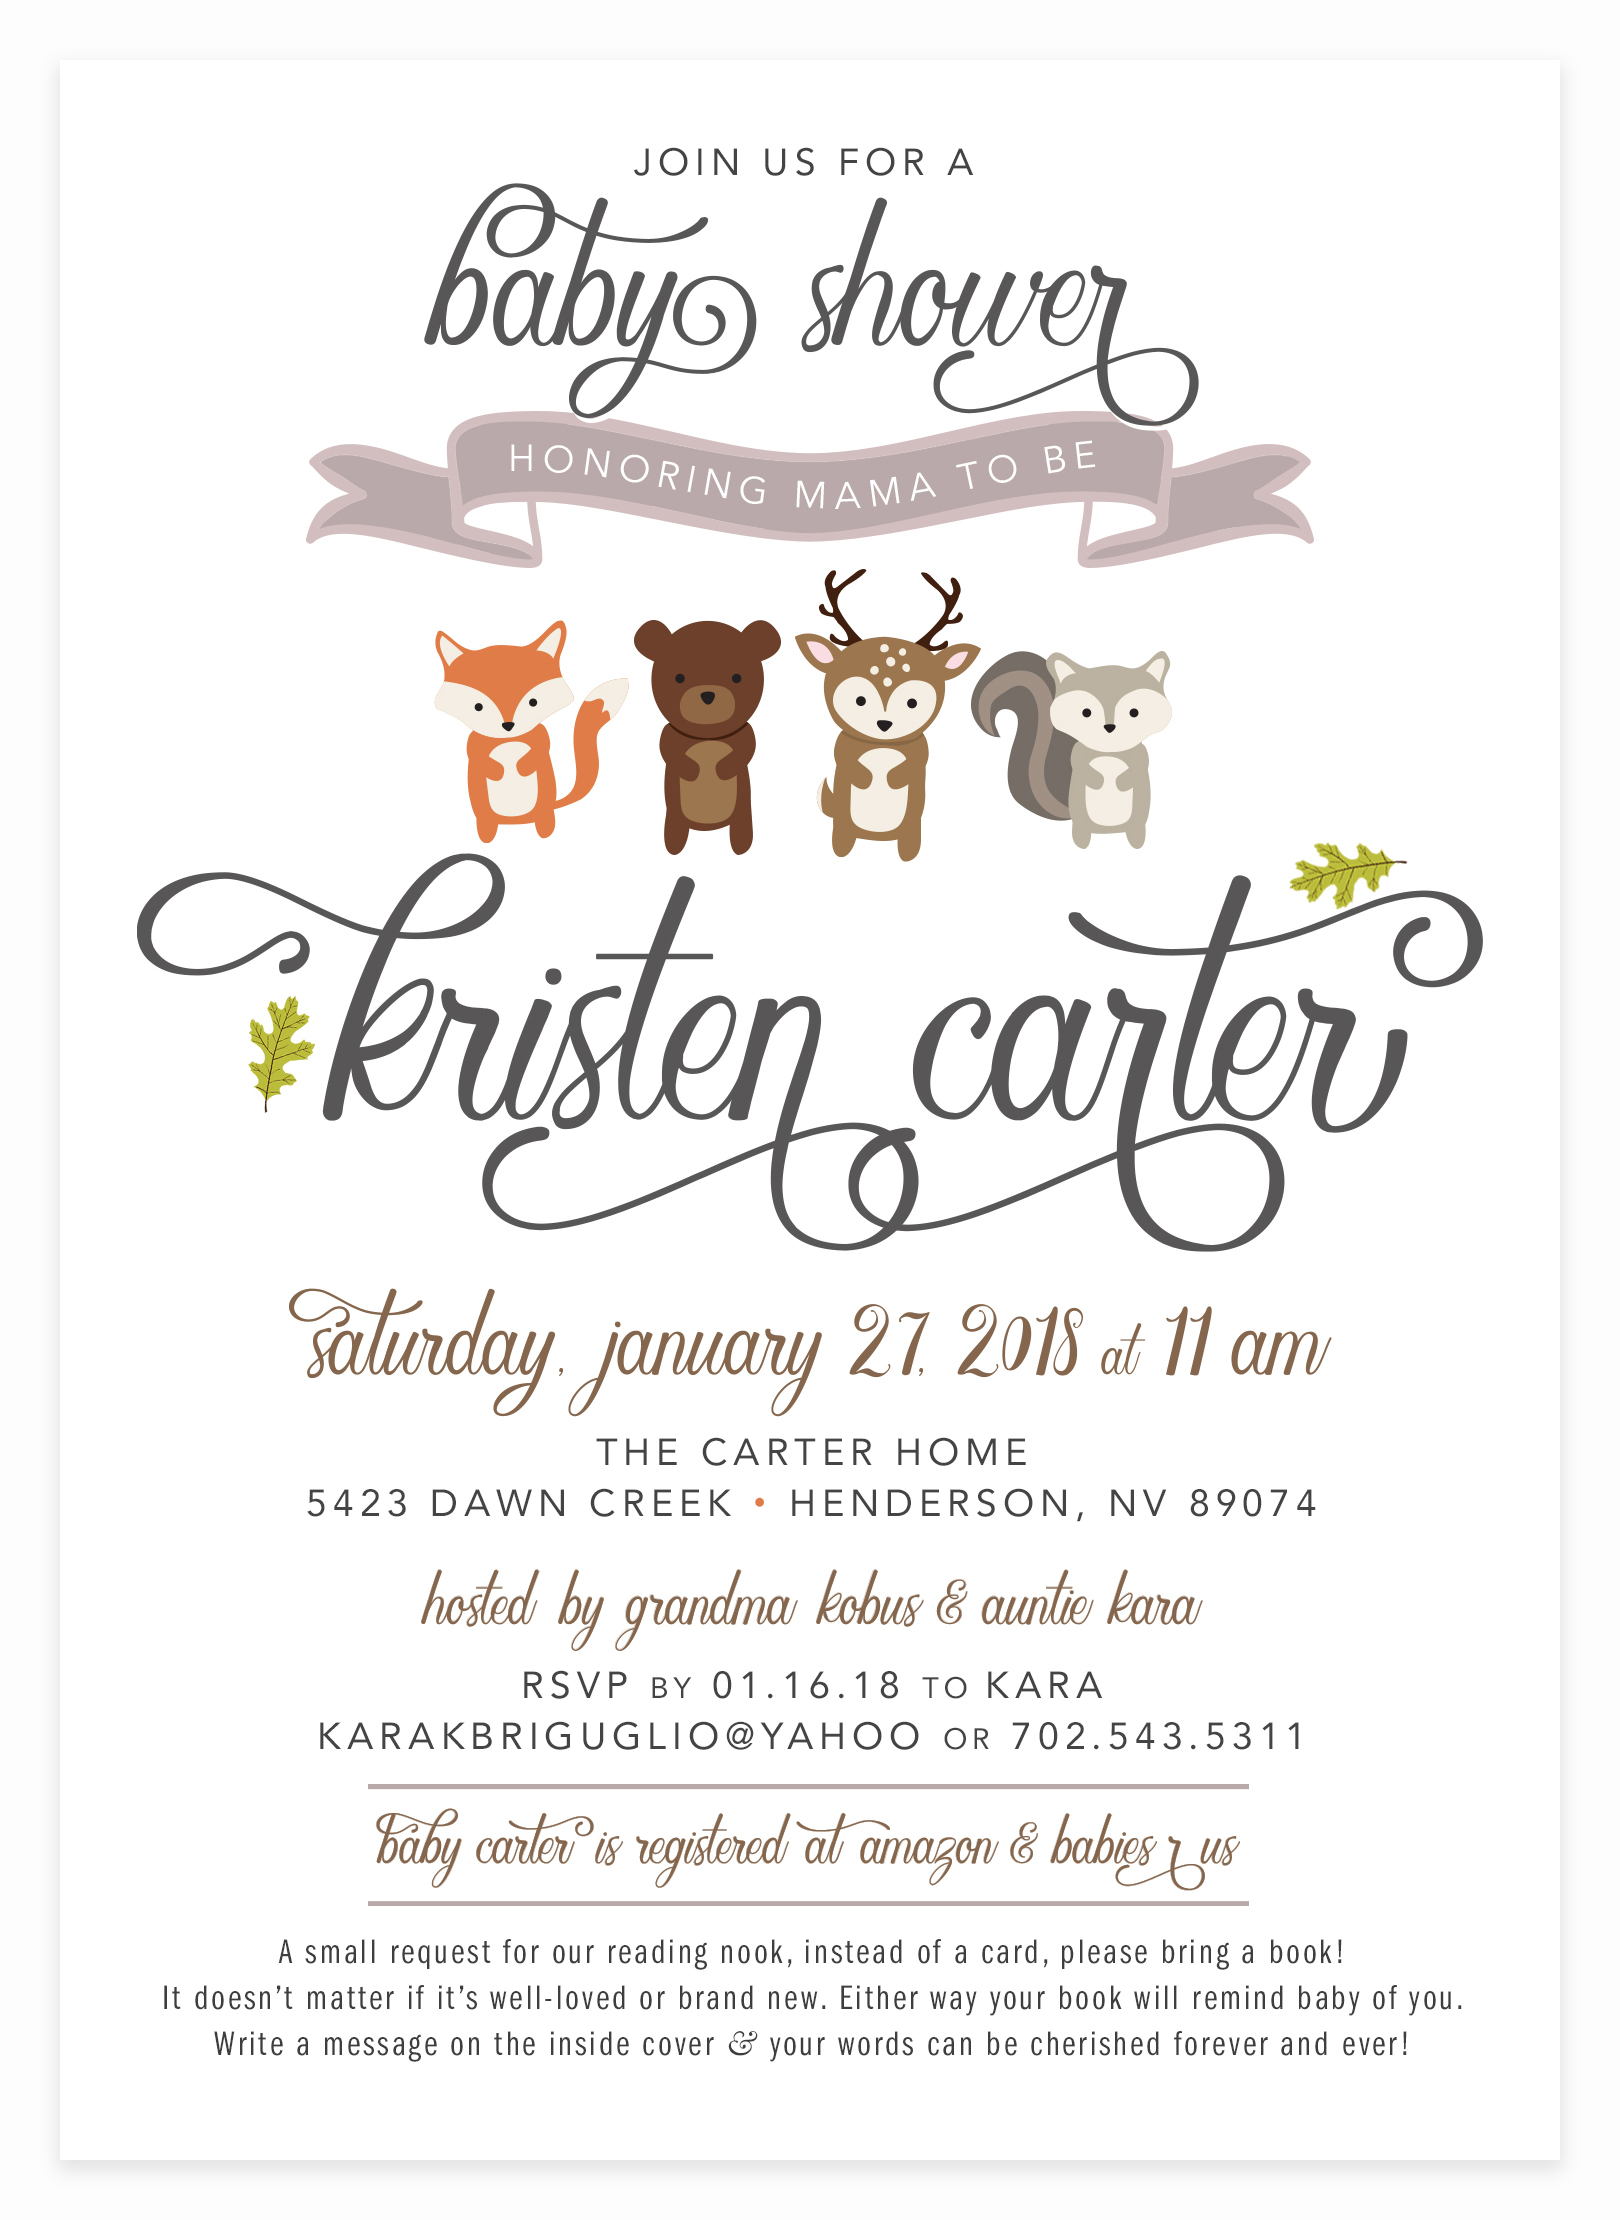 Kitty Meow Boutique Paper Party